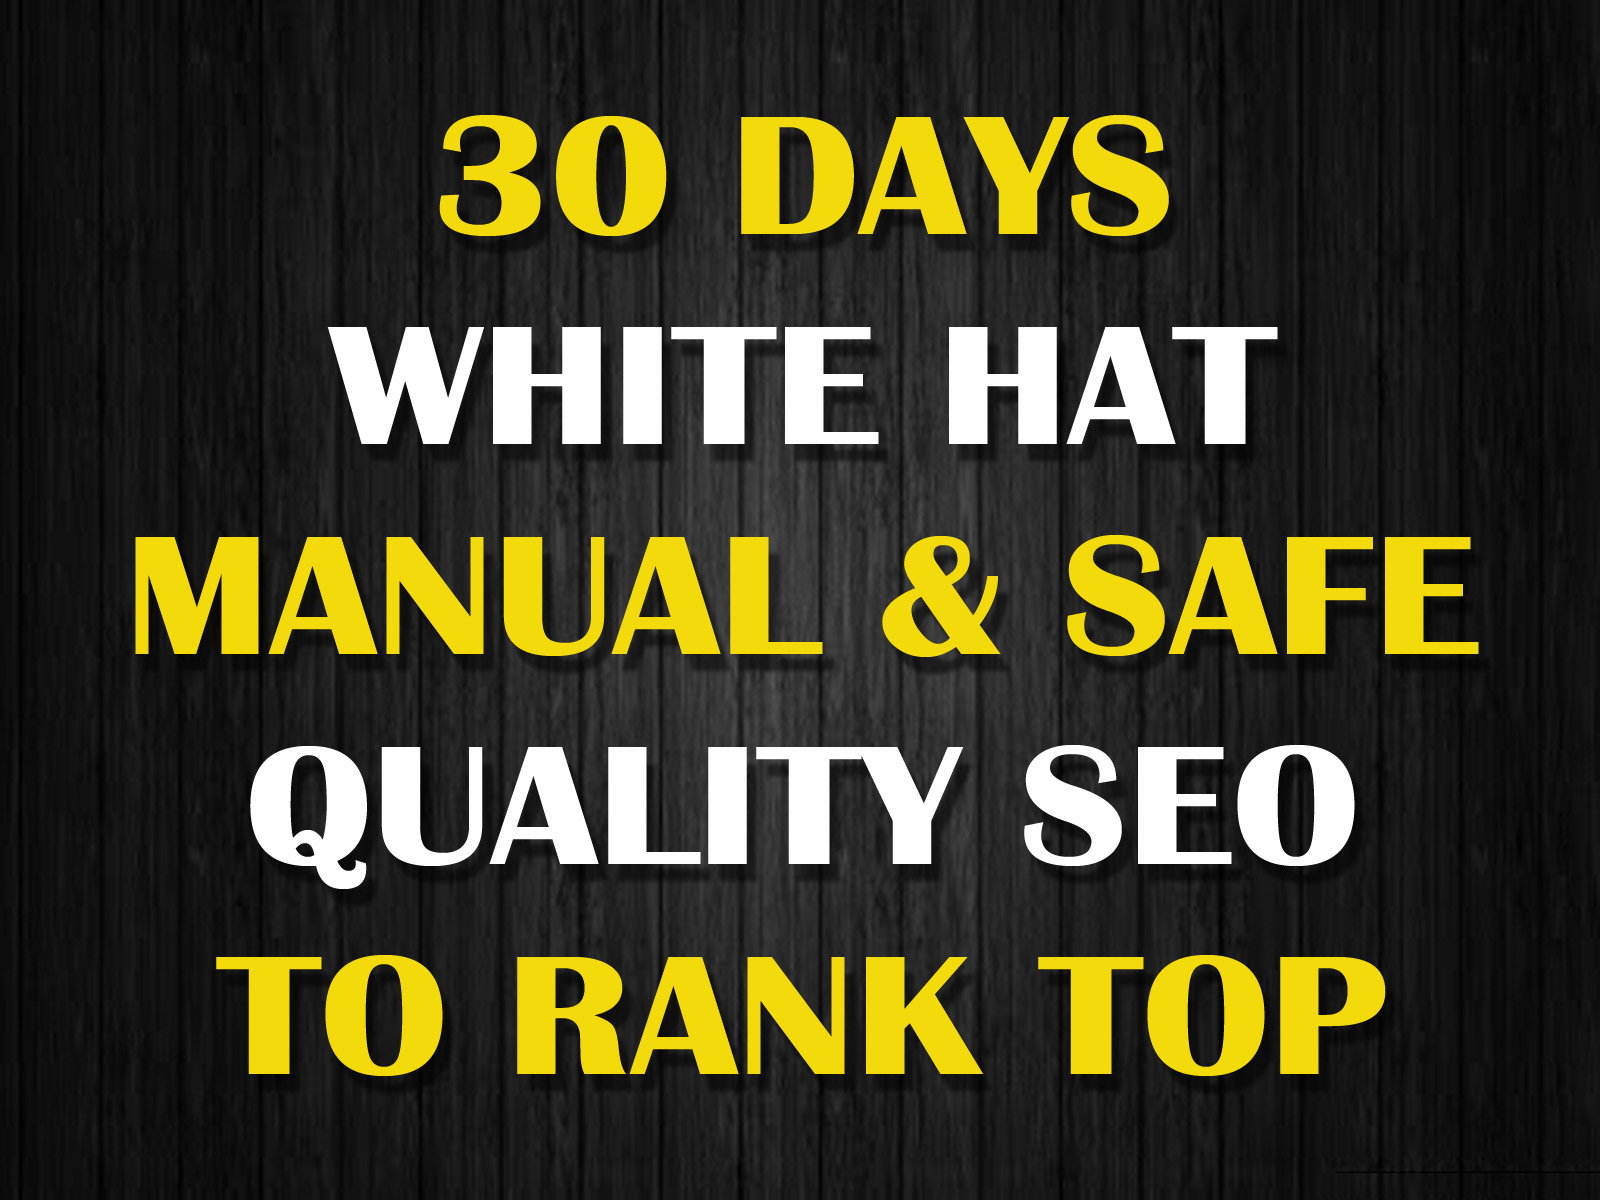 30 Days Manual White Hat SEO Backlinks To Rank Website Fast